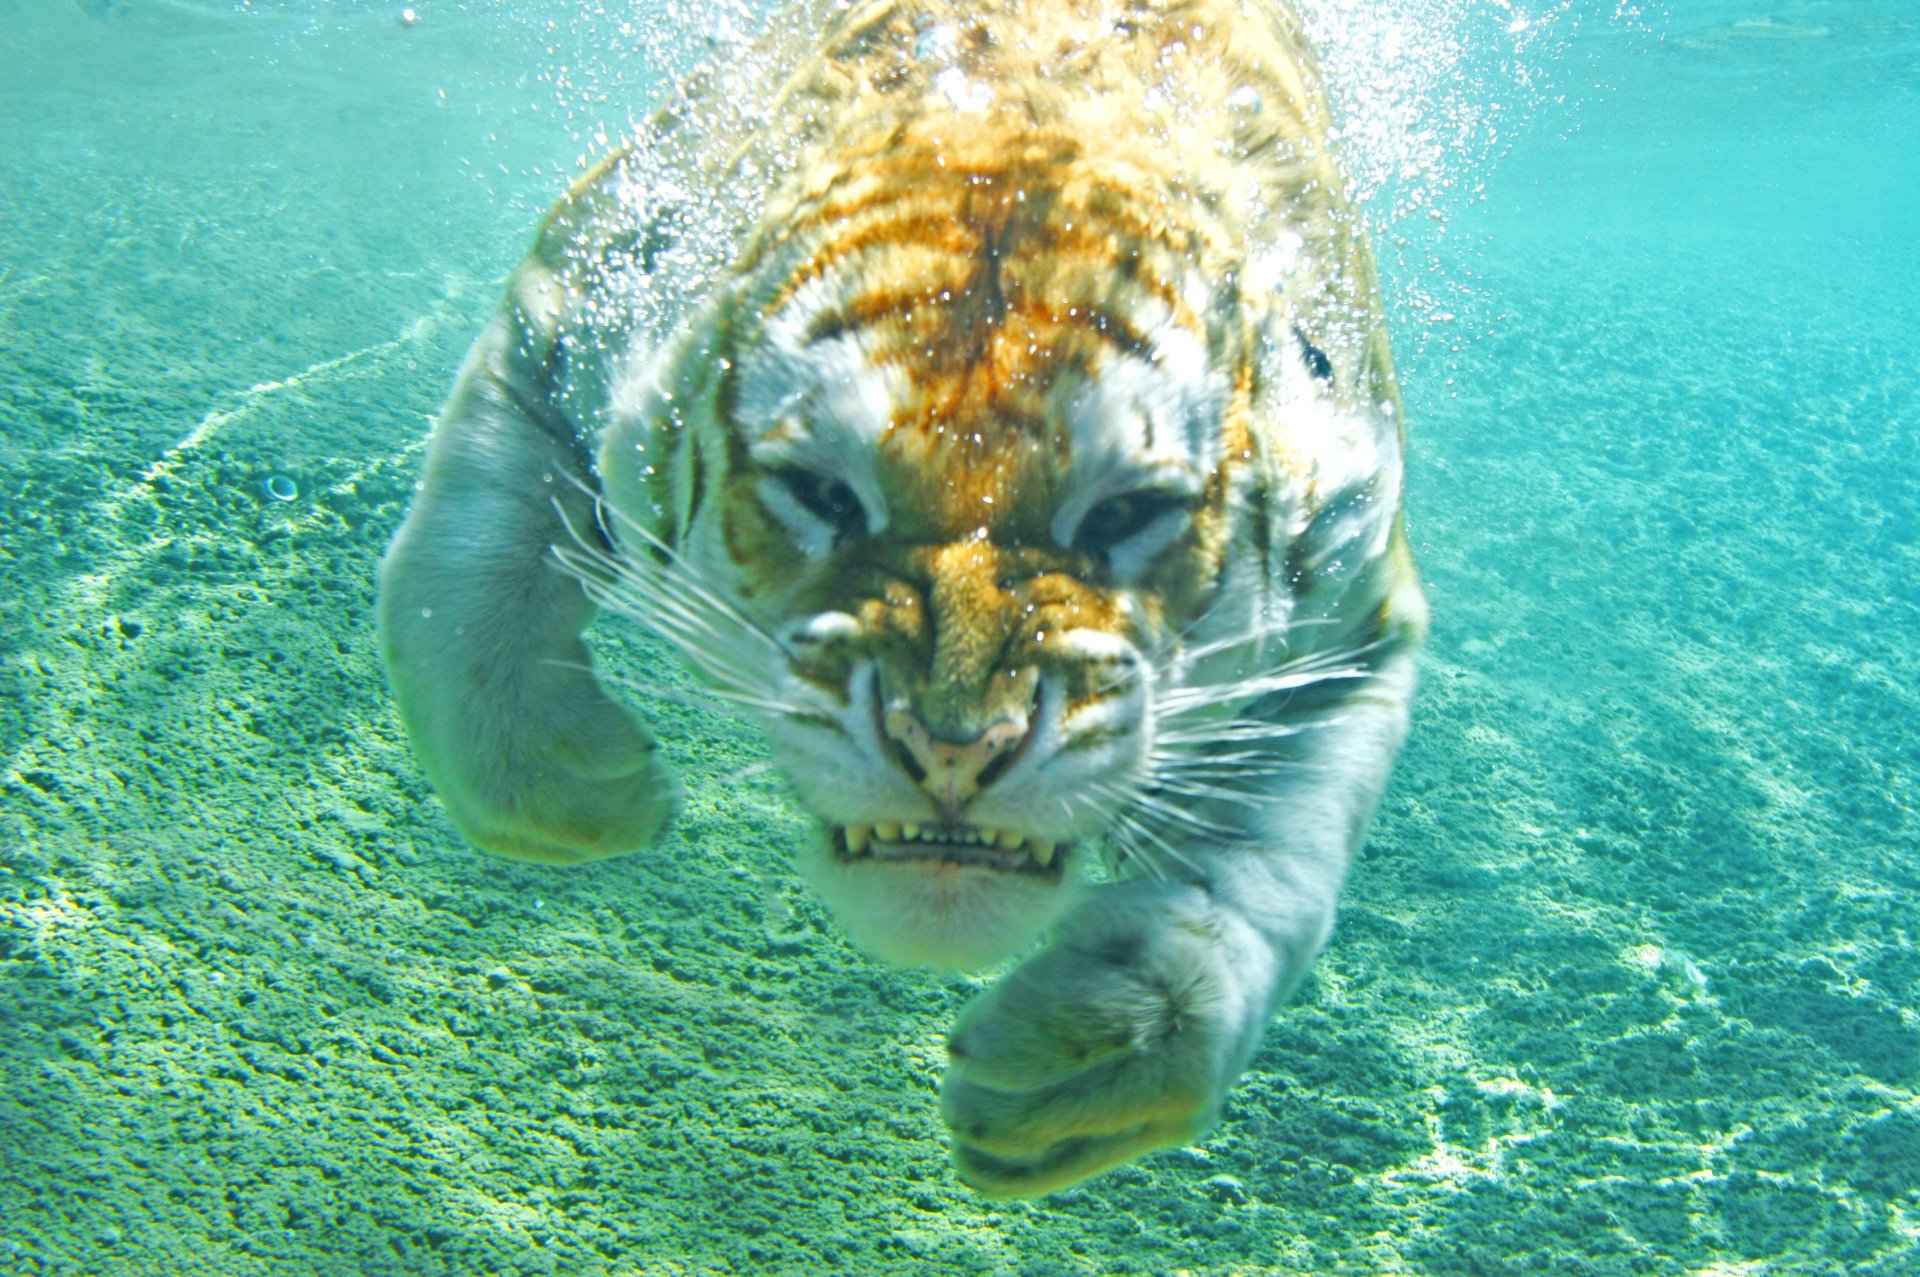 Animal - Tiger  Big Cat Swimming Underwater Wallpaper